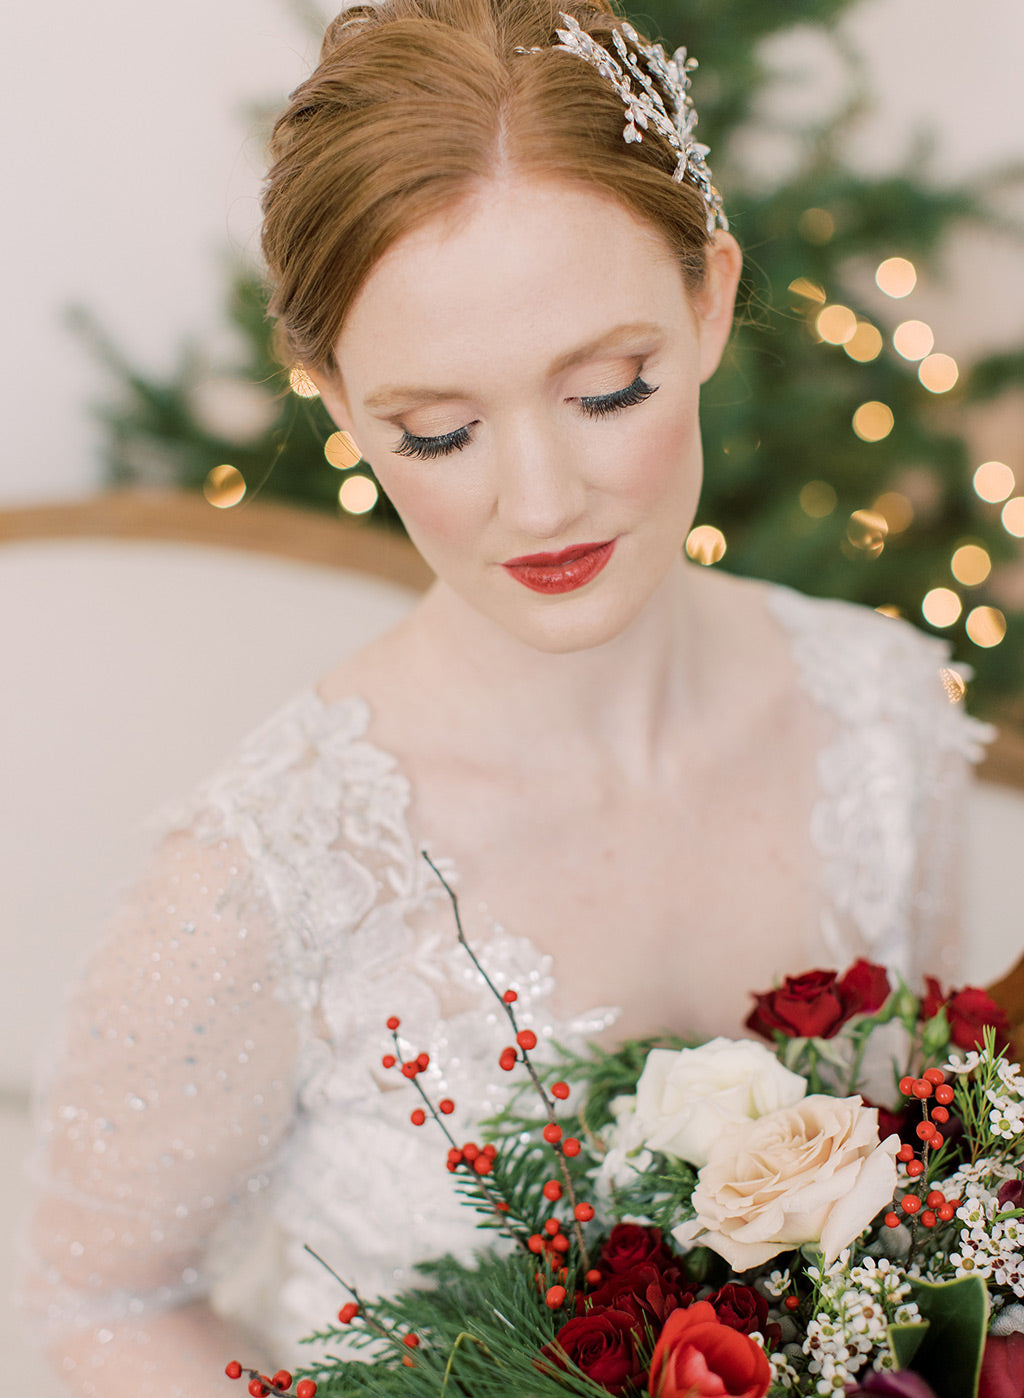 Makeup for Christmas Wedding Inspiration